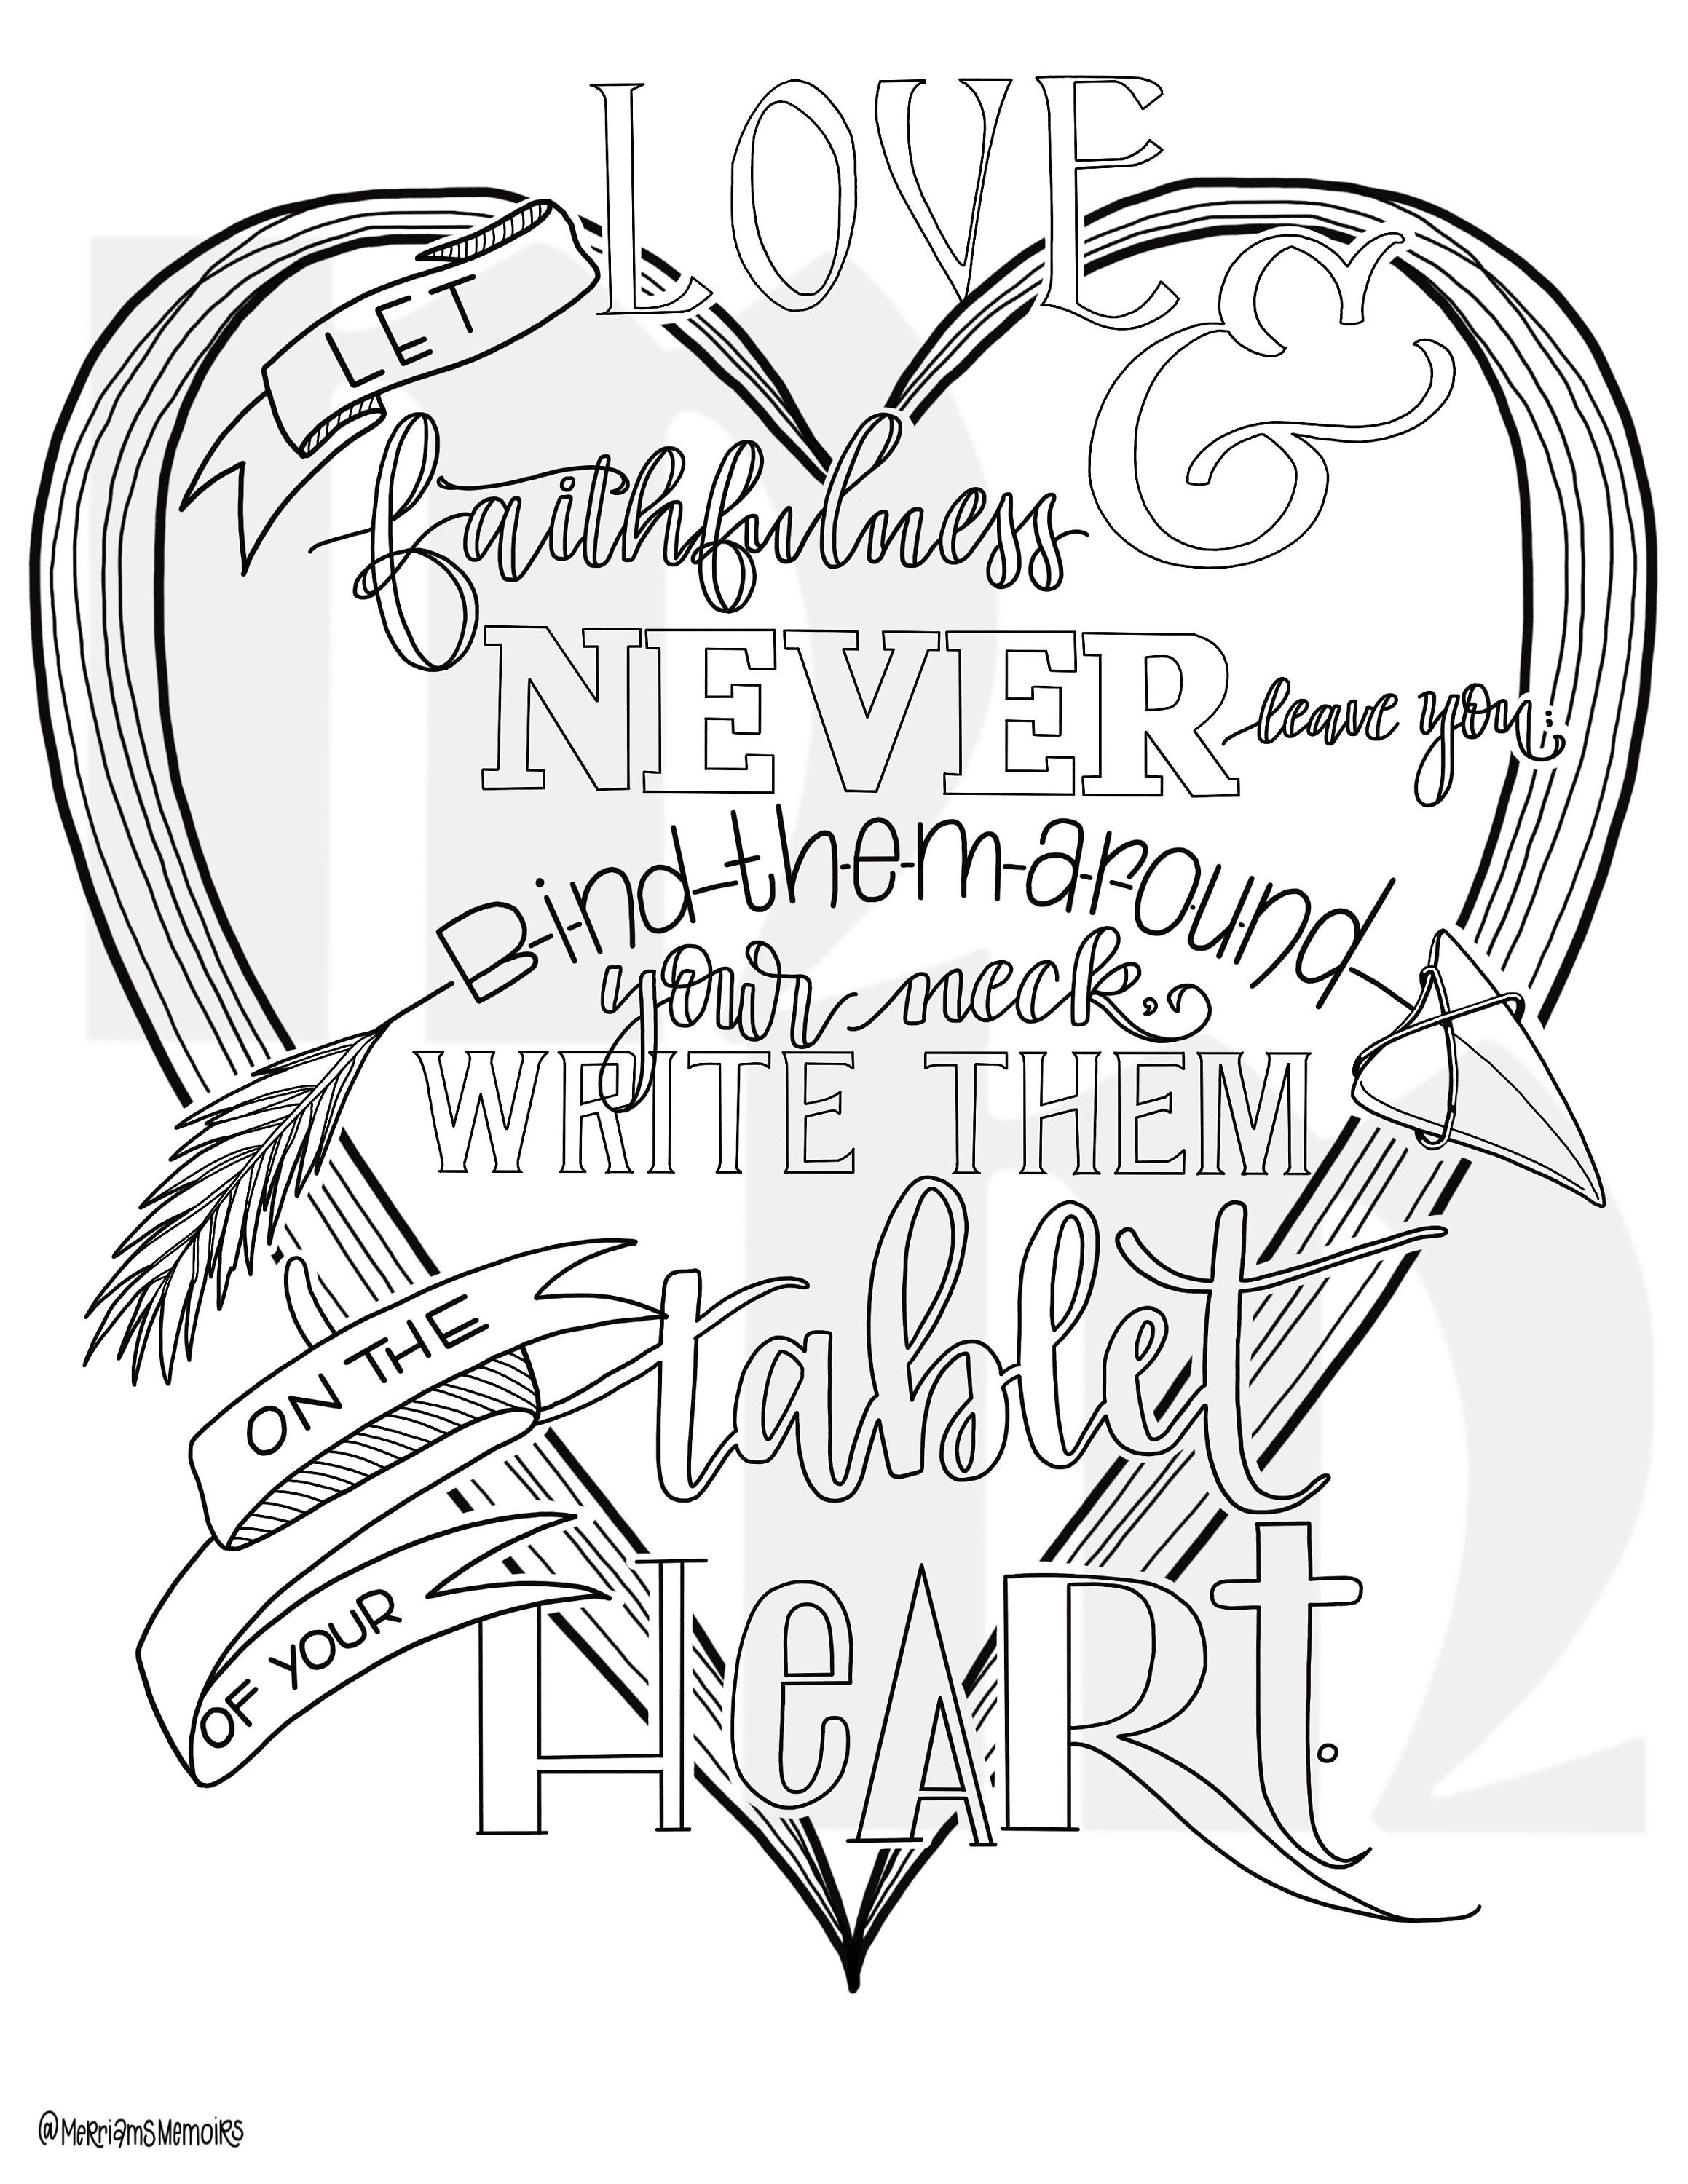 write them on your heart bible coloring page | love